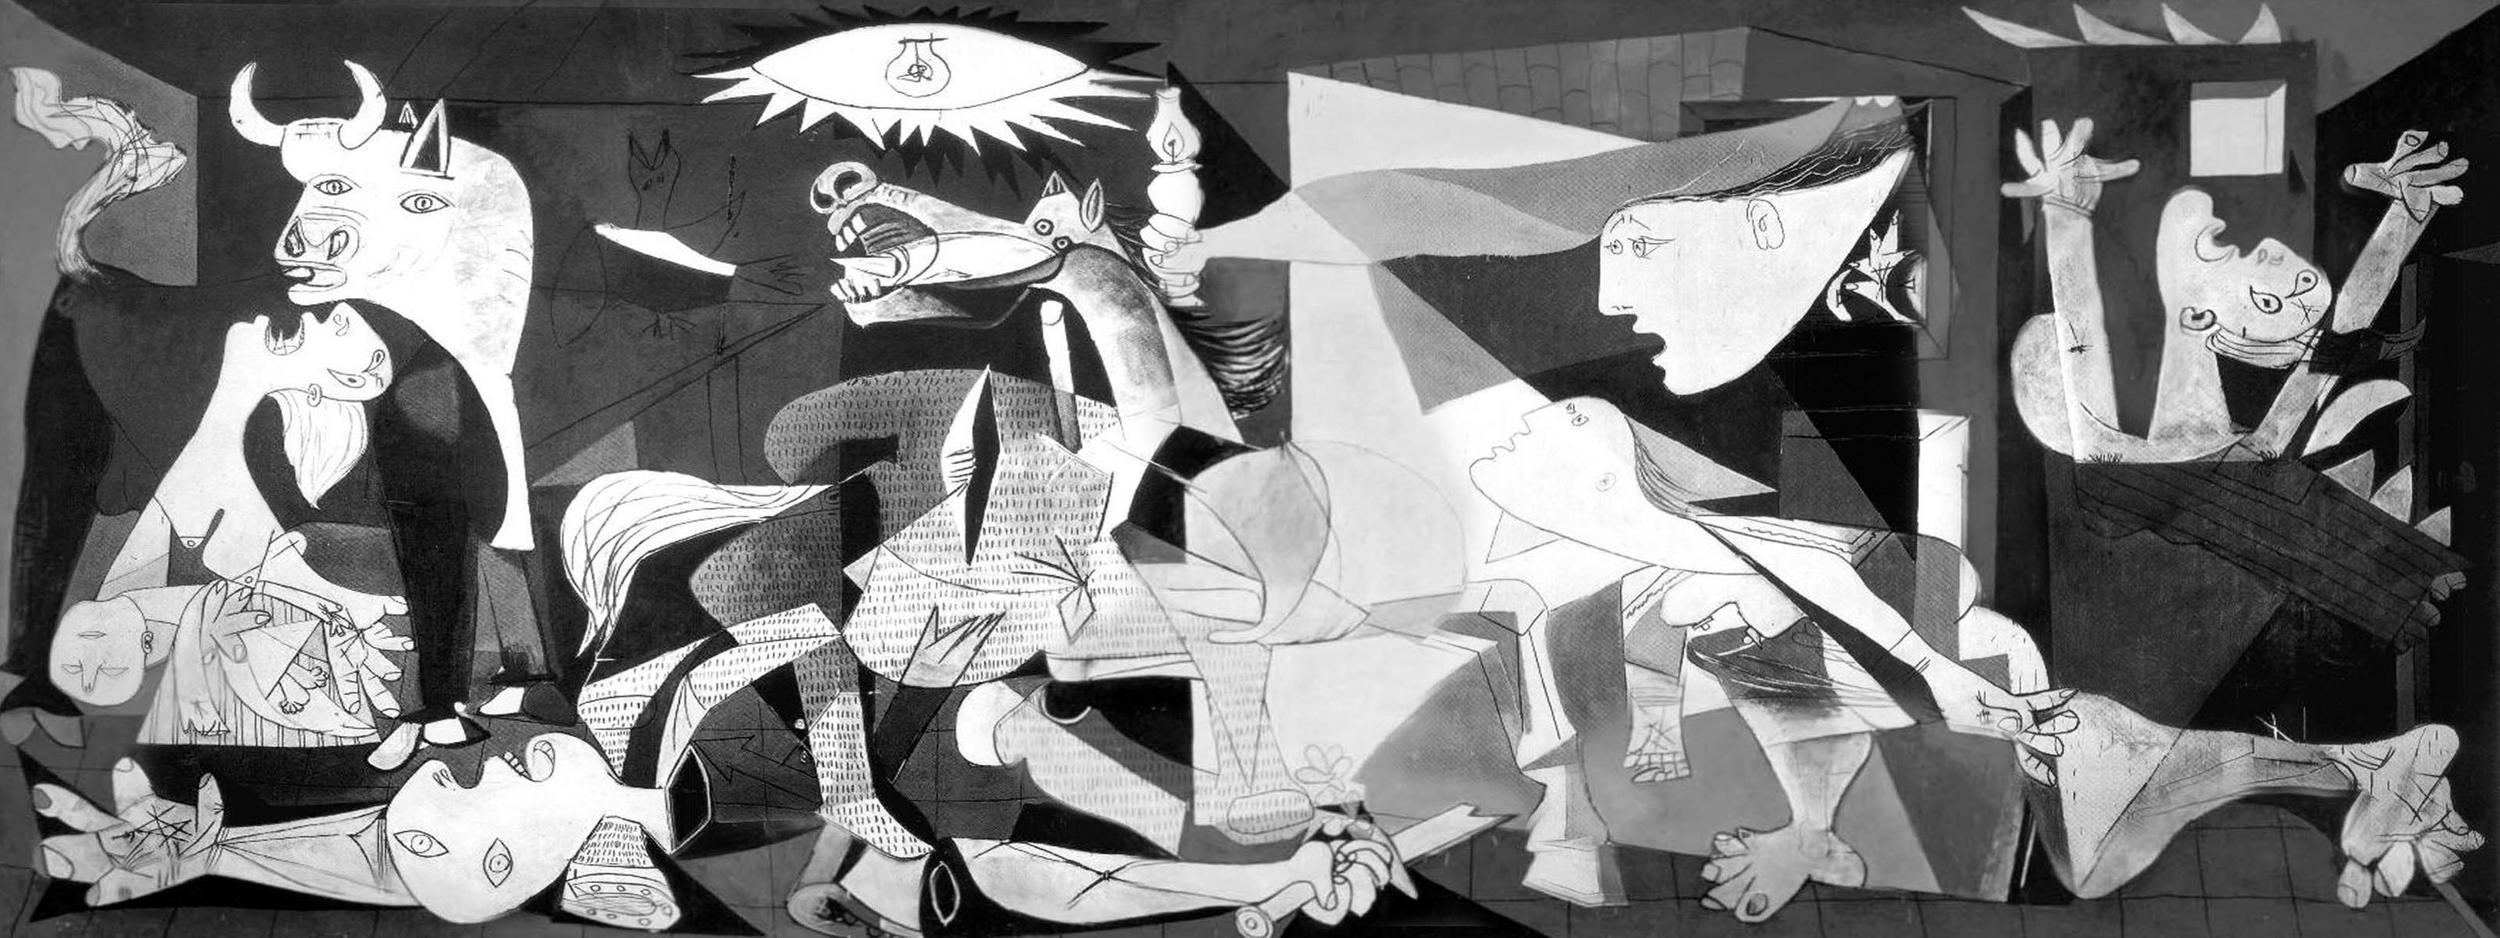 Picasso's  Guernica  (1937), in response to the German and Italian bombing in the Basque Country during the Spanish Civil War.